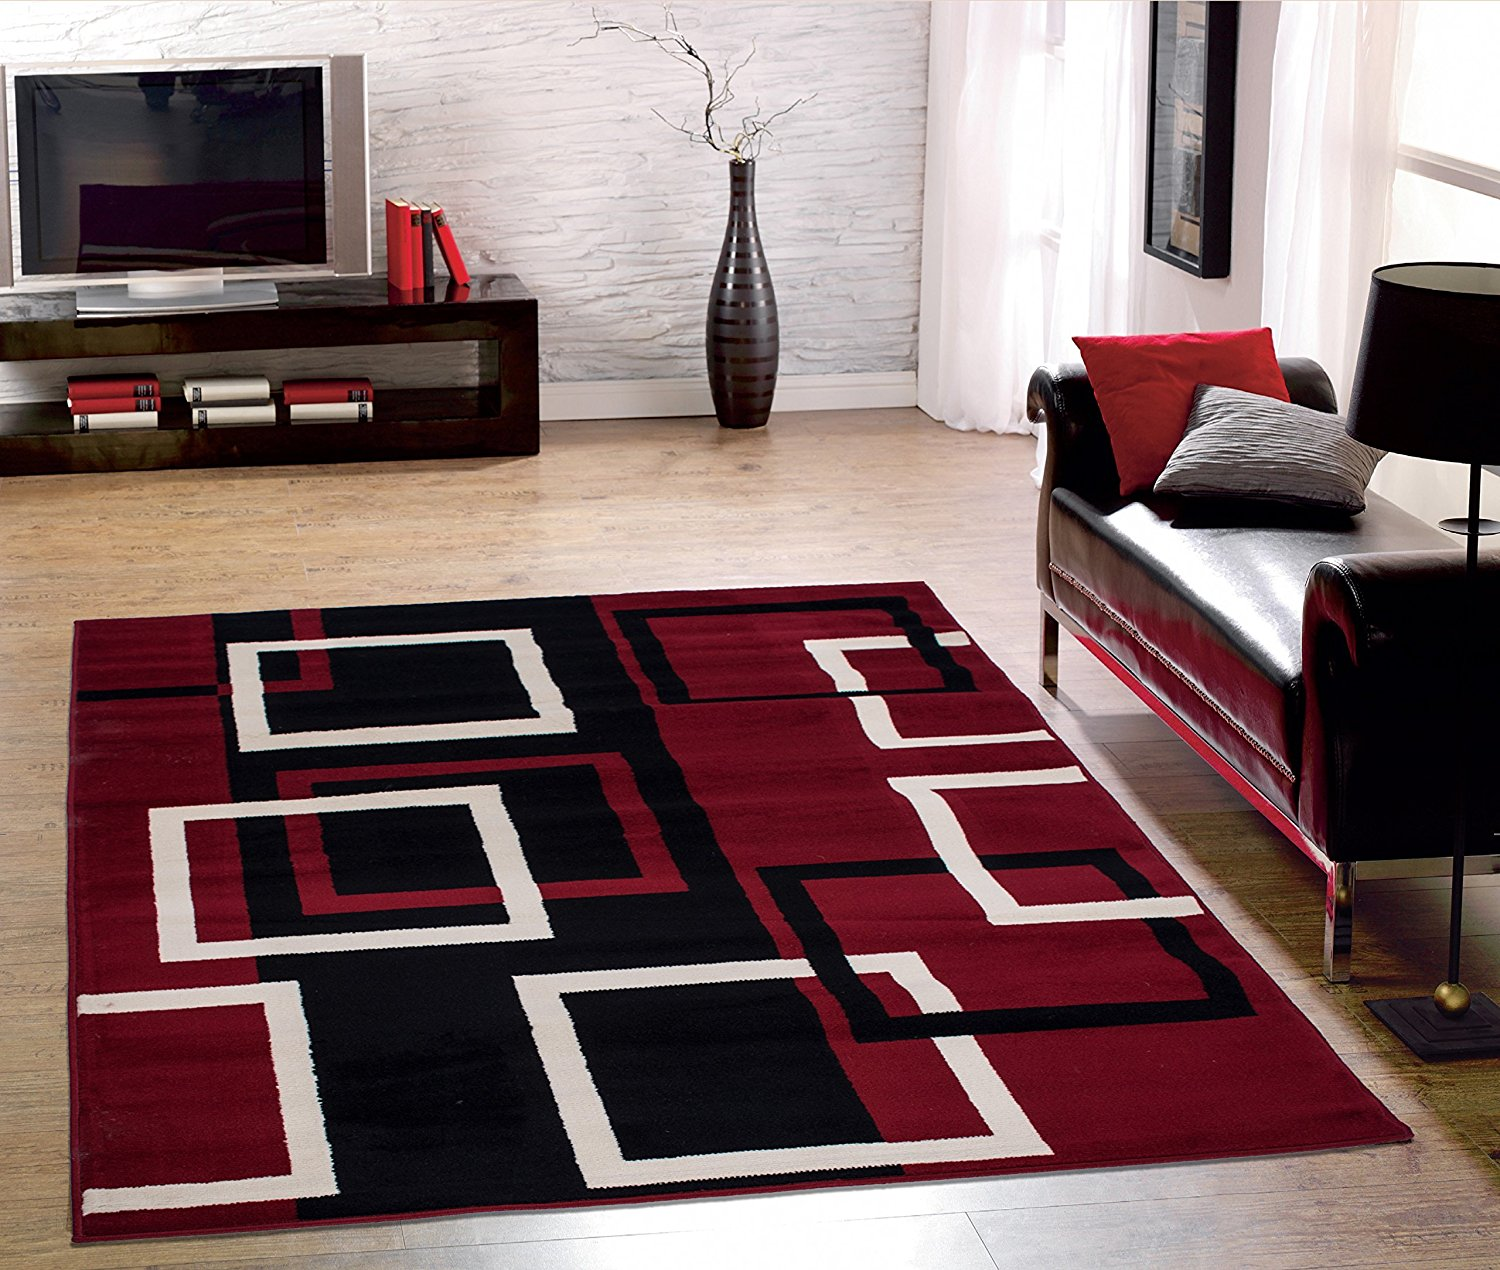 Clifton Collection Modern Bo Design Area Rug 5 W X 7 L Dark Red Genuine Gy Nonskid Multicolor Bouquet Western Ottohome 236 Curtain 118